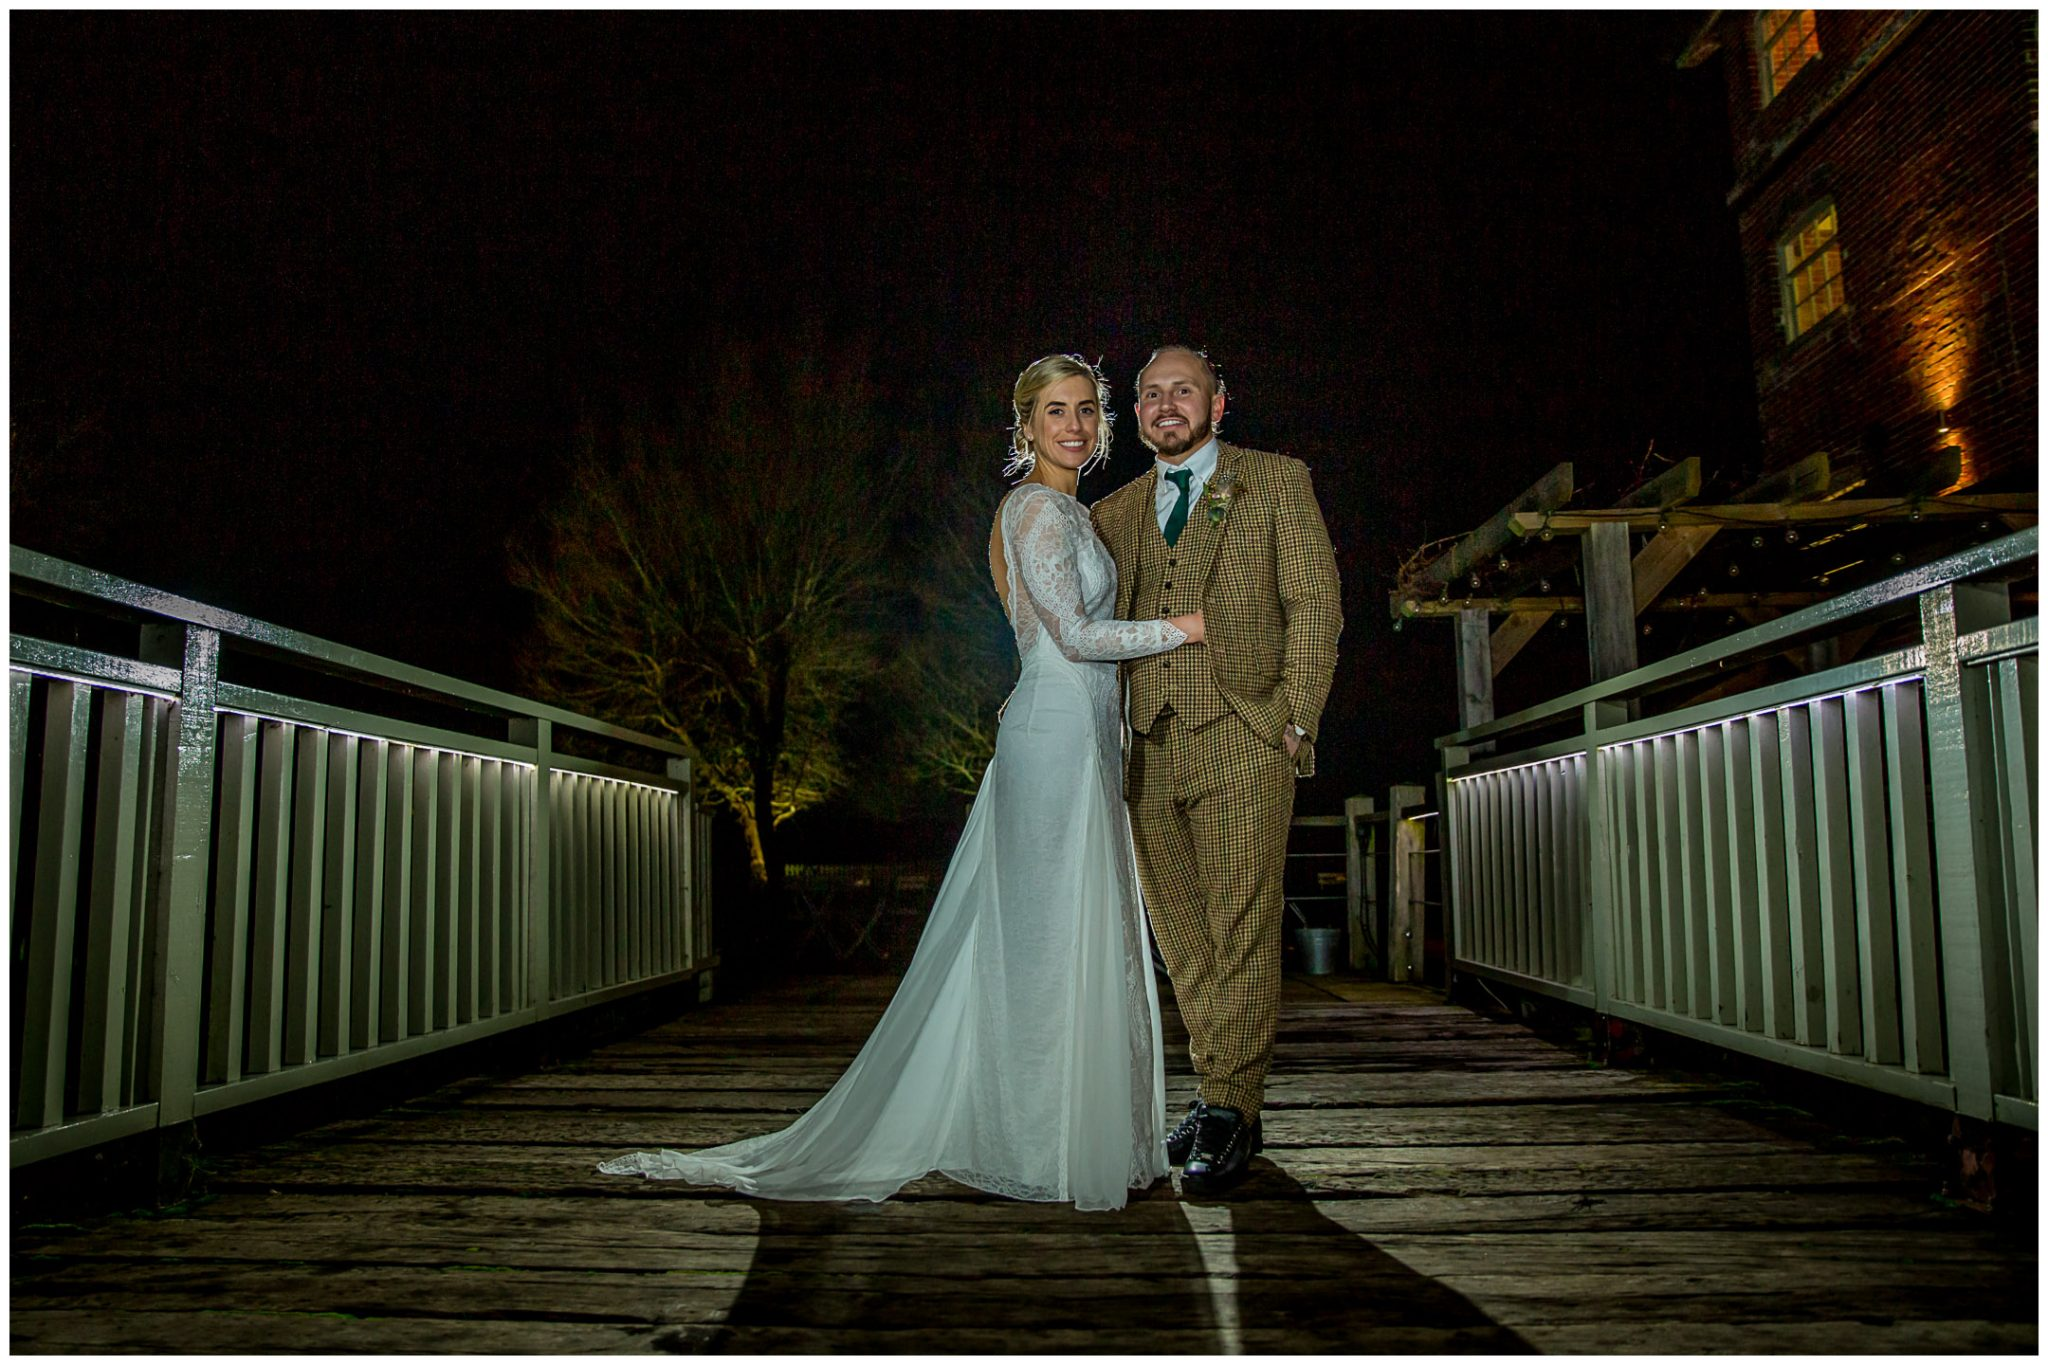 Nighttime couple portrait in the bridge at Sopley Mill